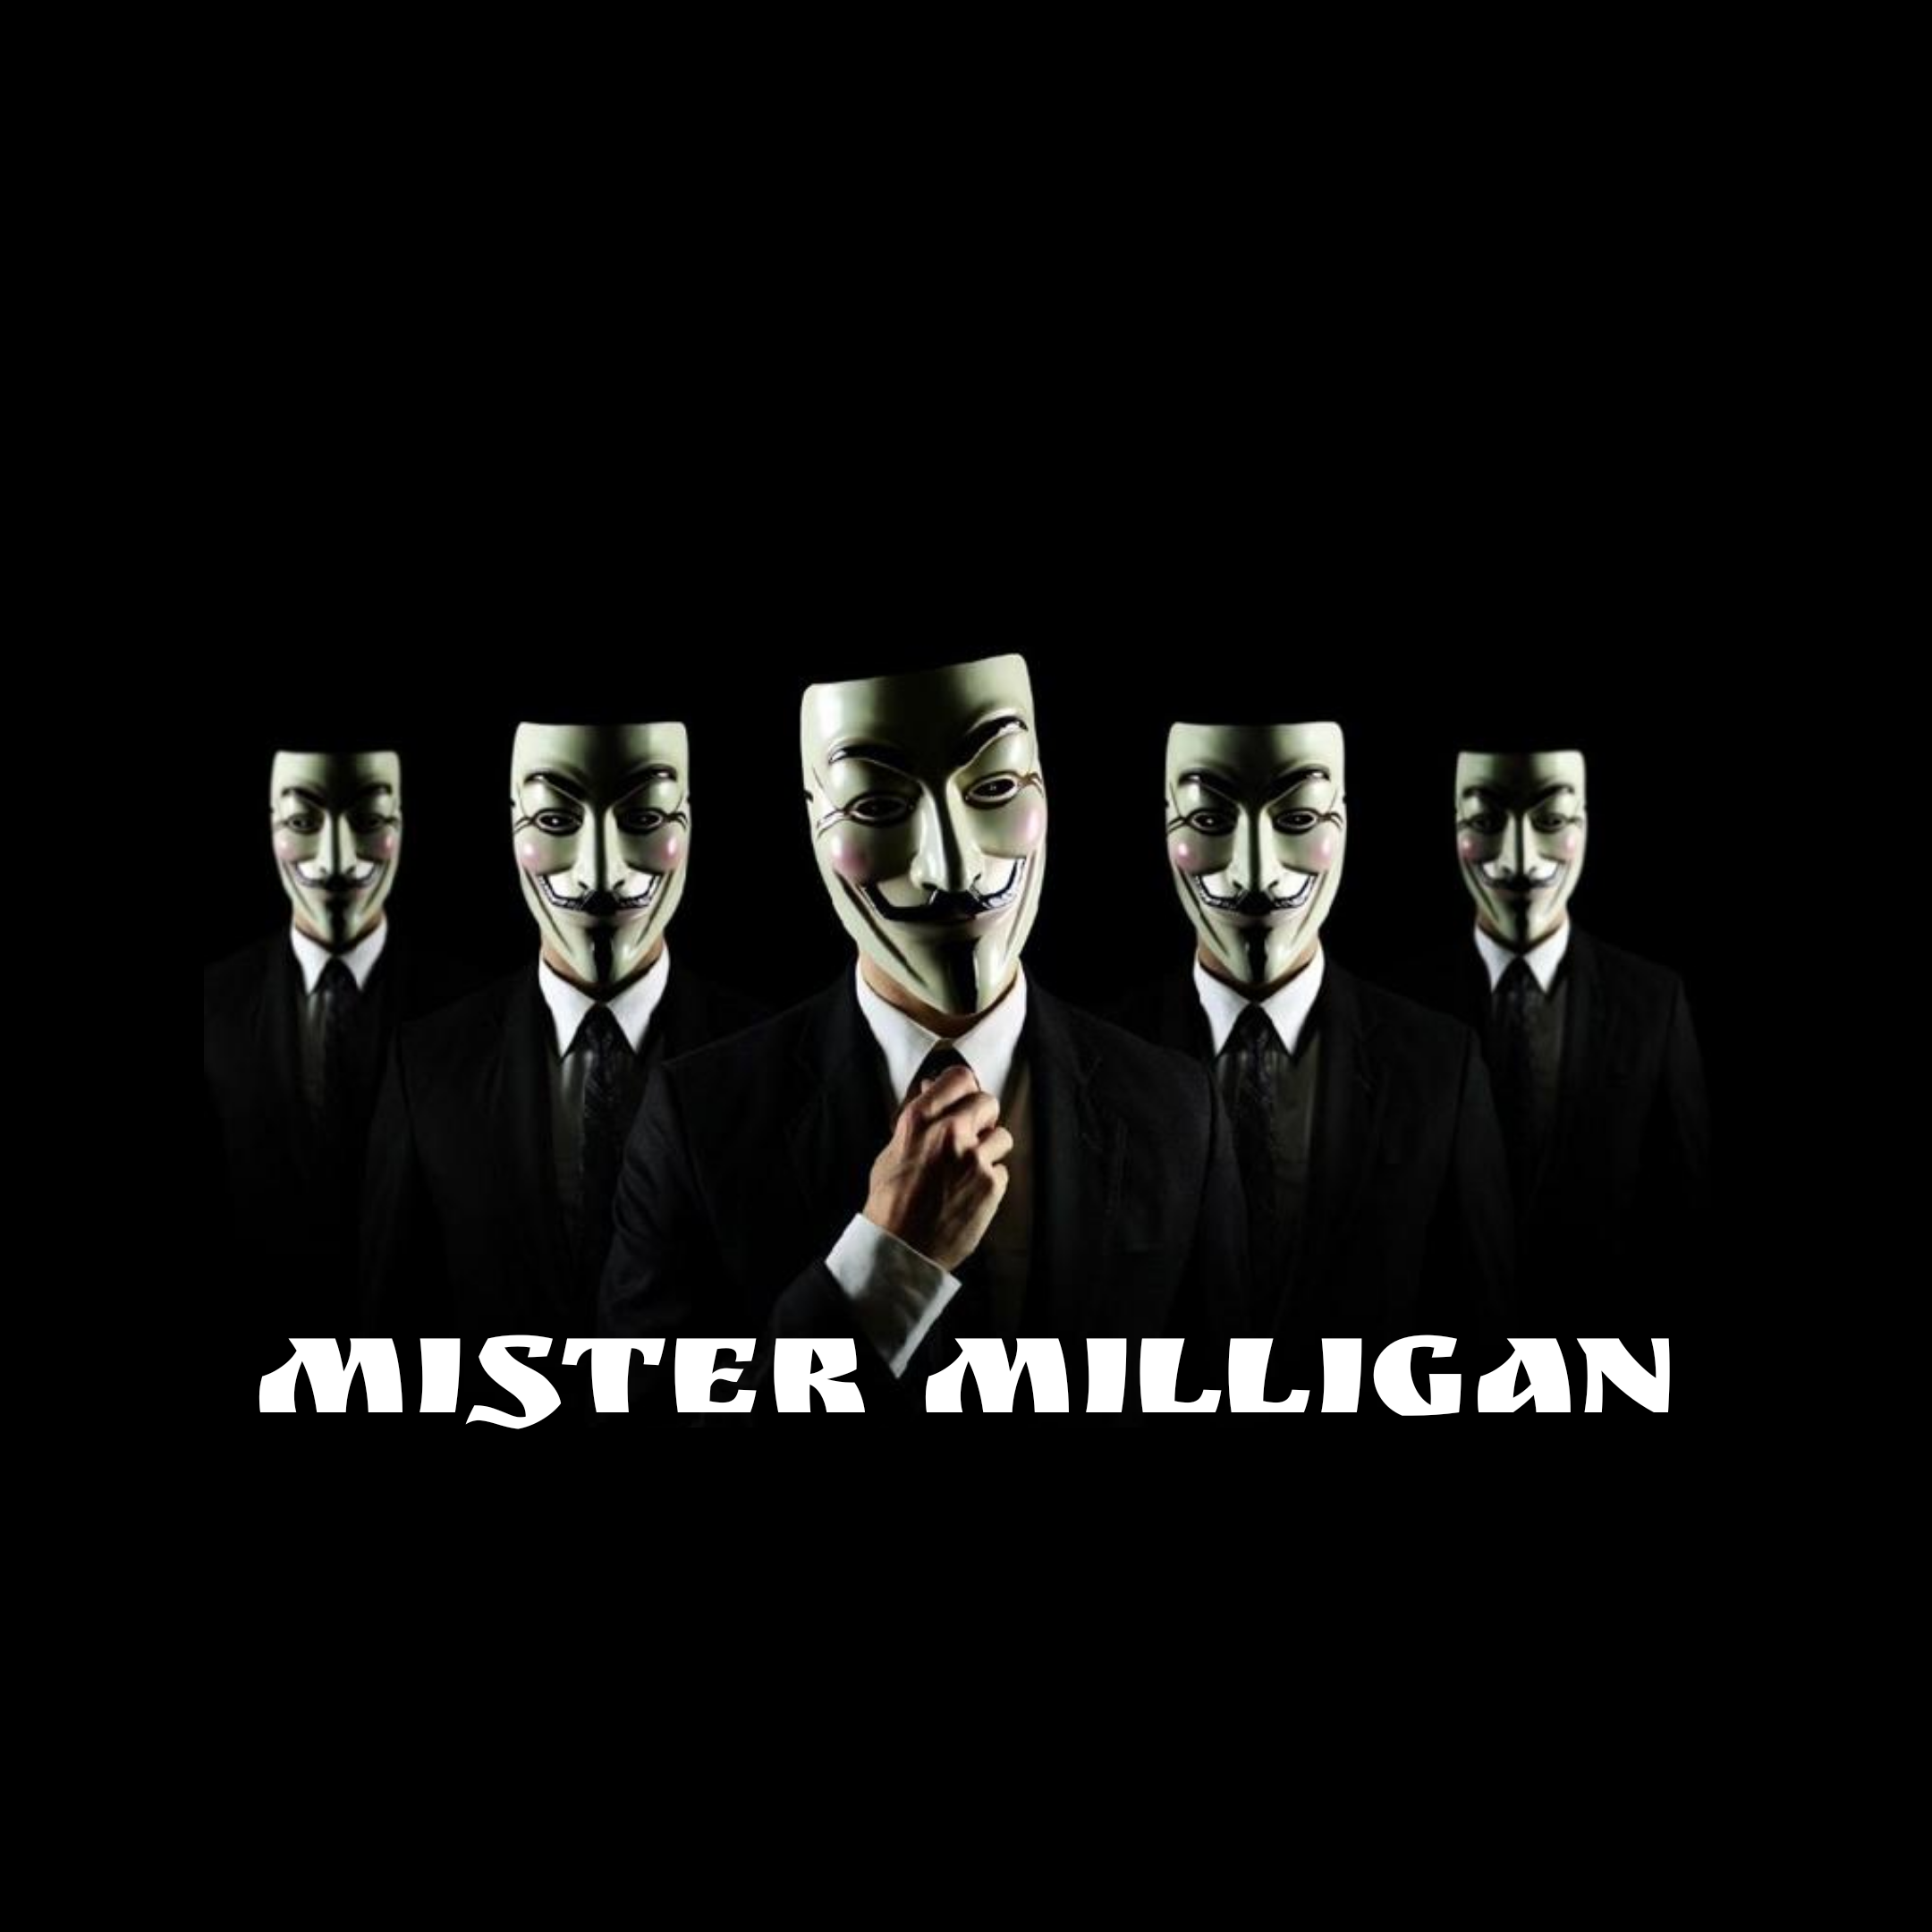 Аватар Mister Milligan